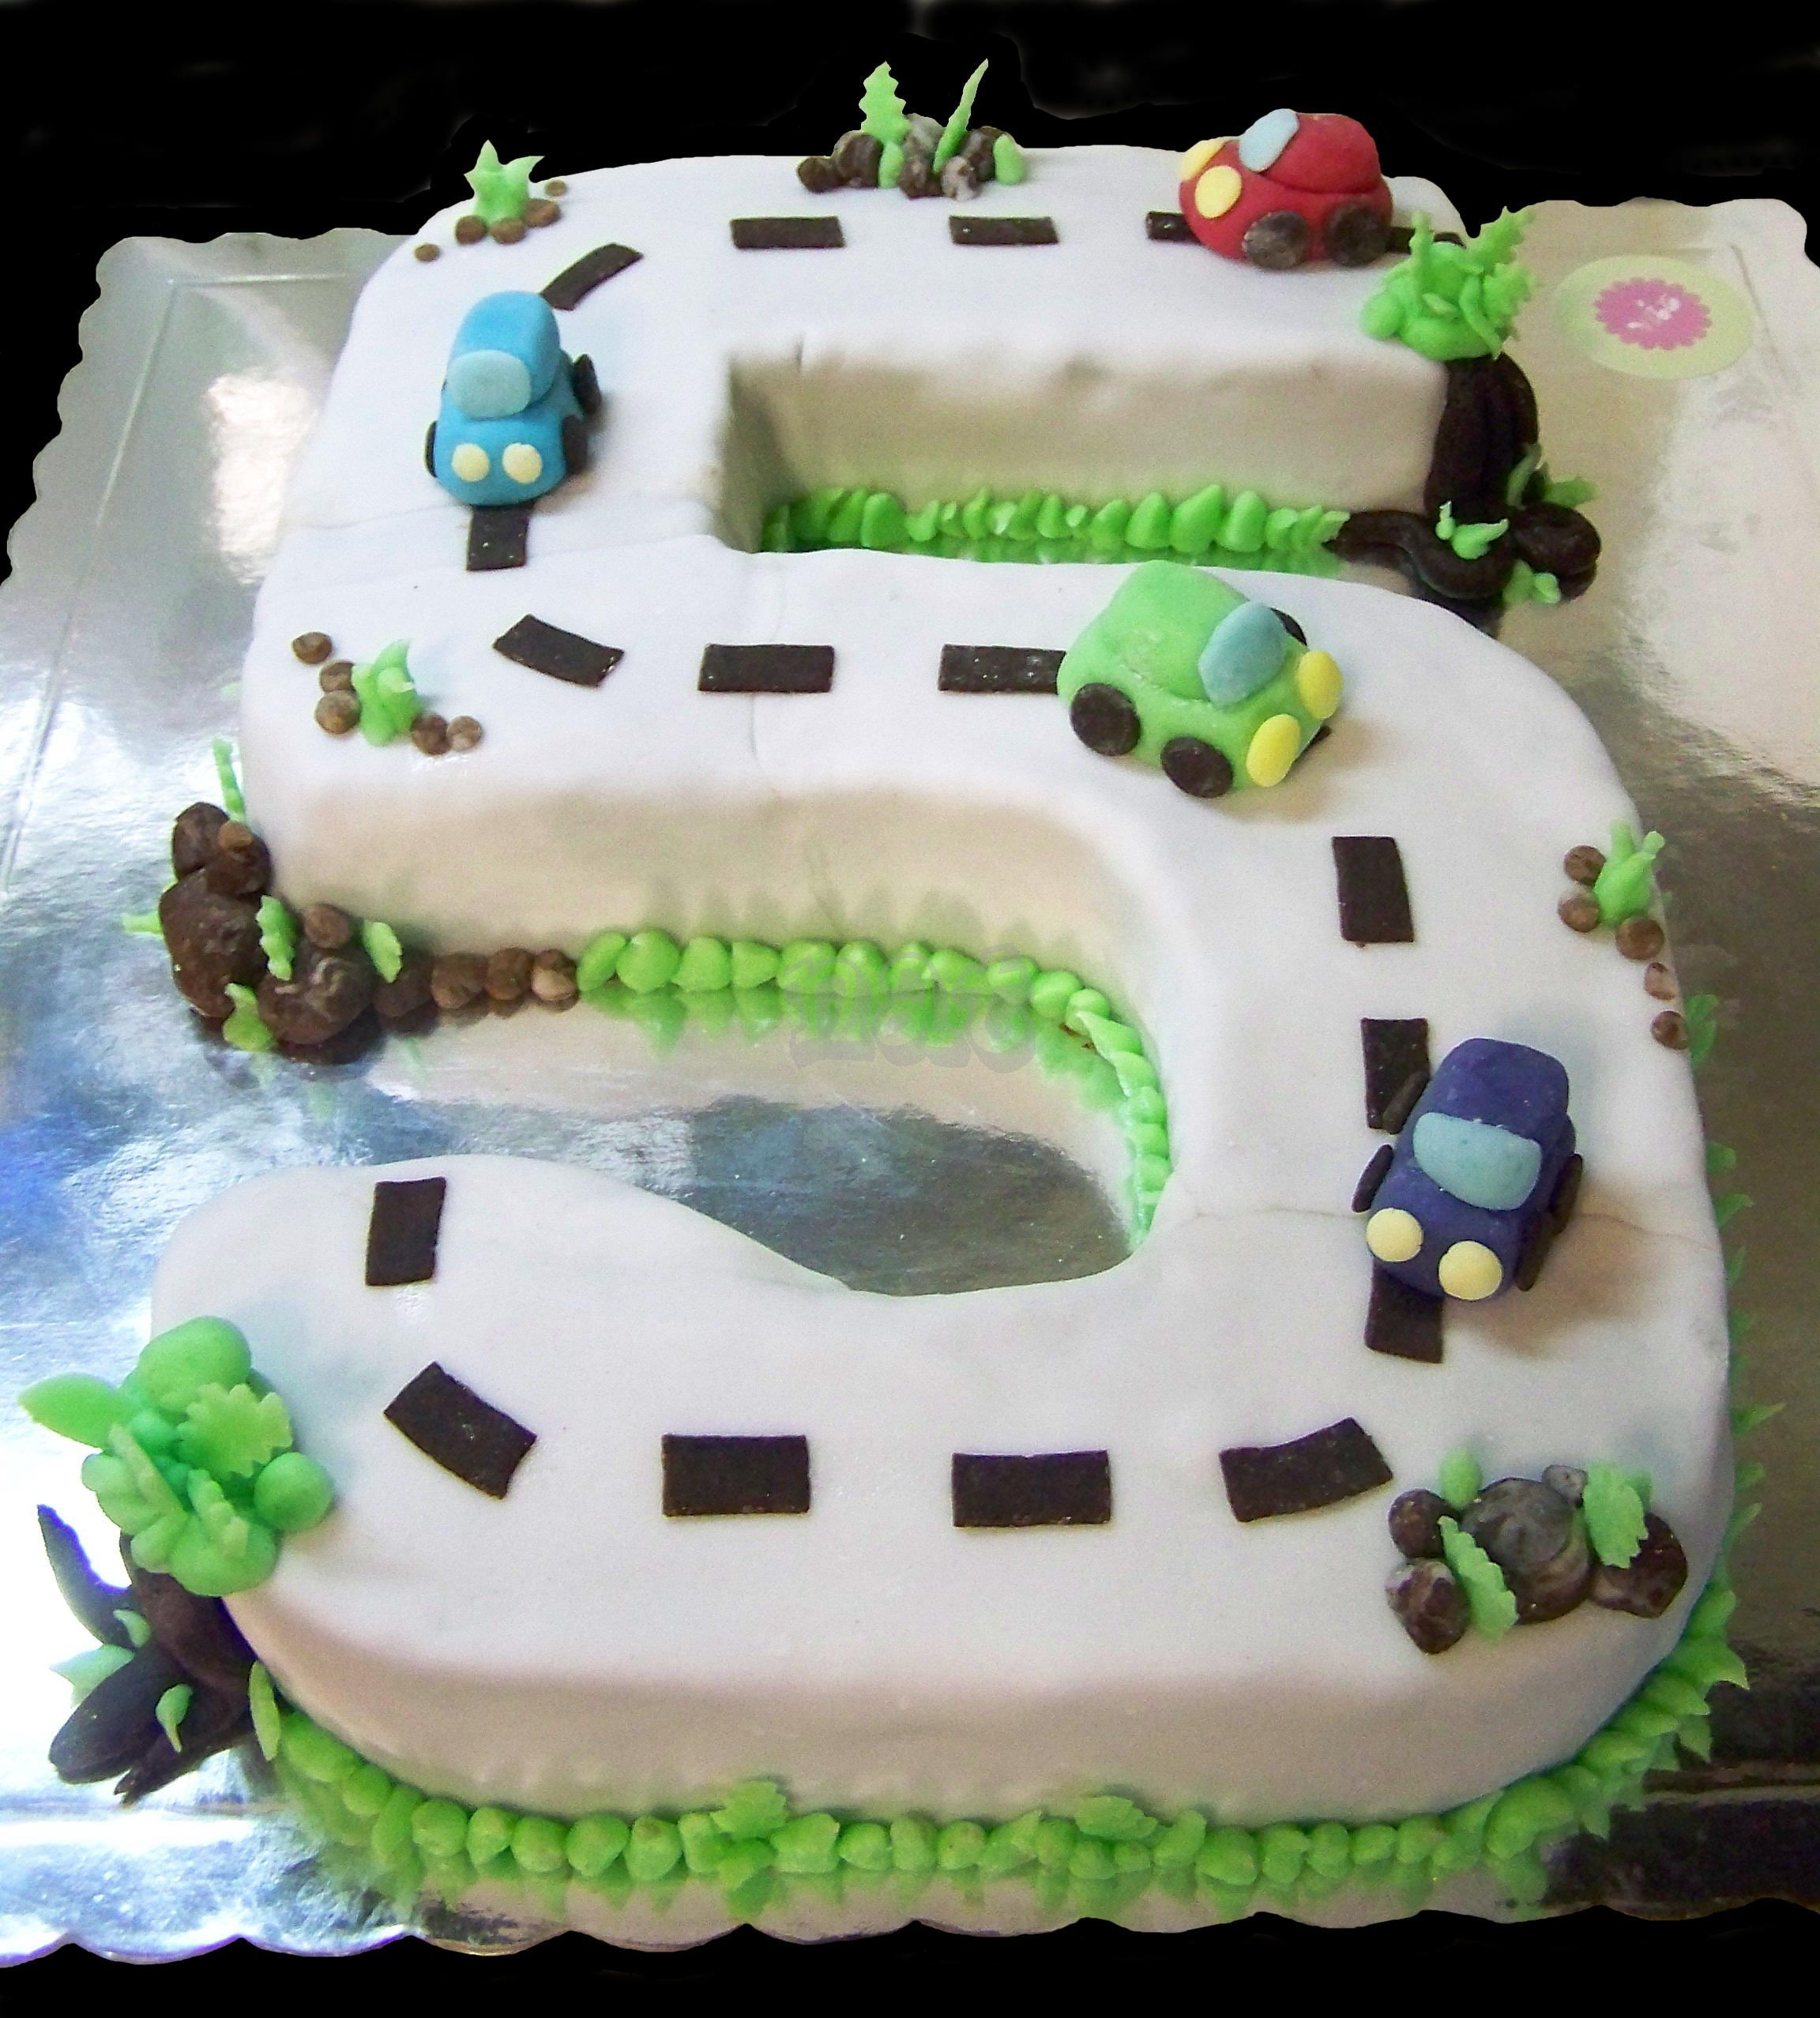 Cake Ideas For One Year Old: Cake For A One Year Old Hey Ideas